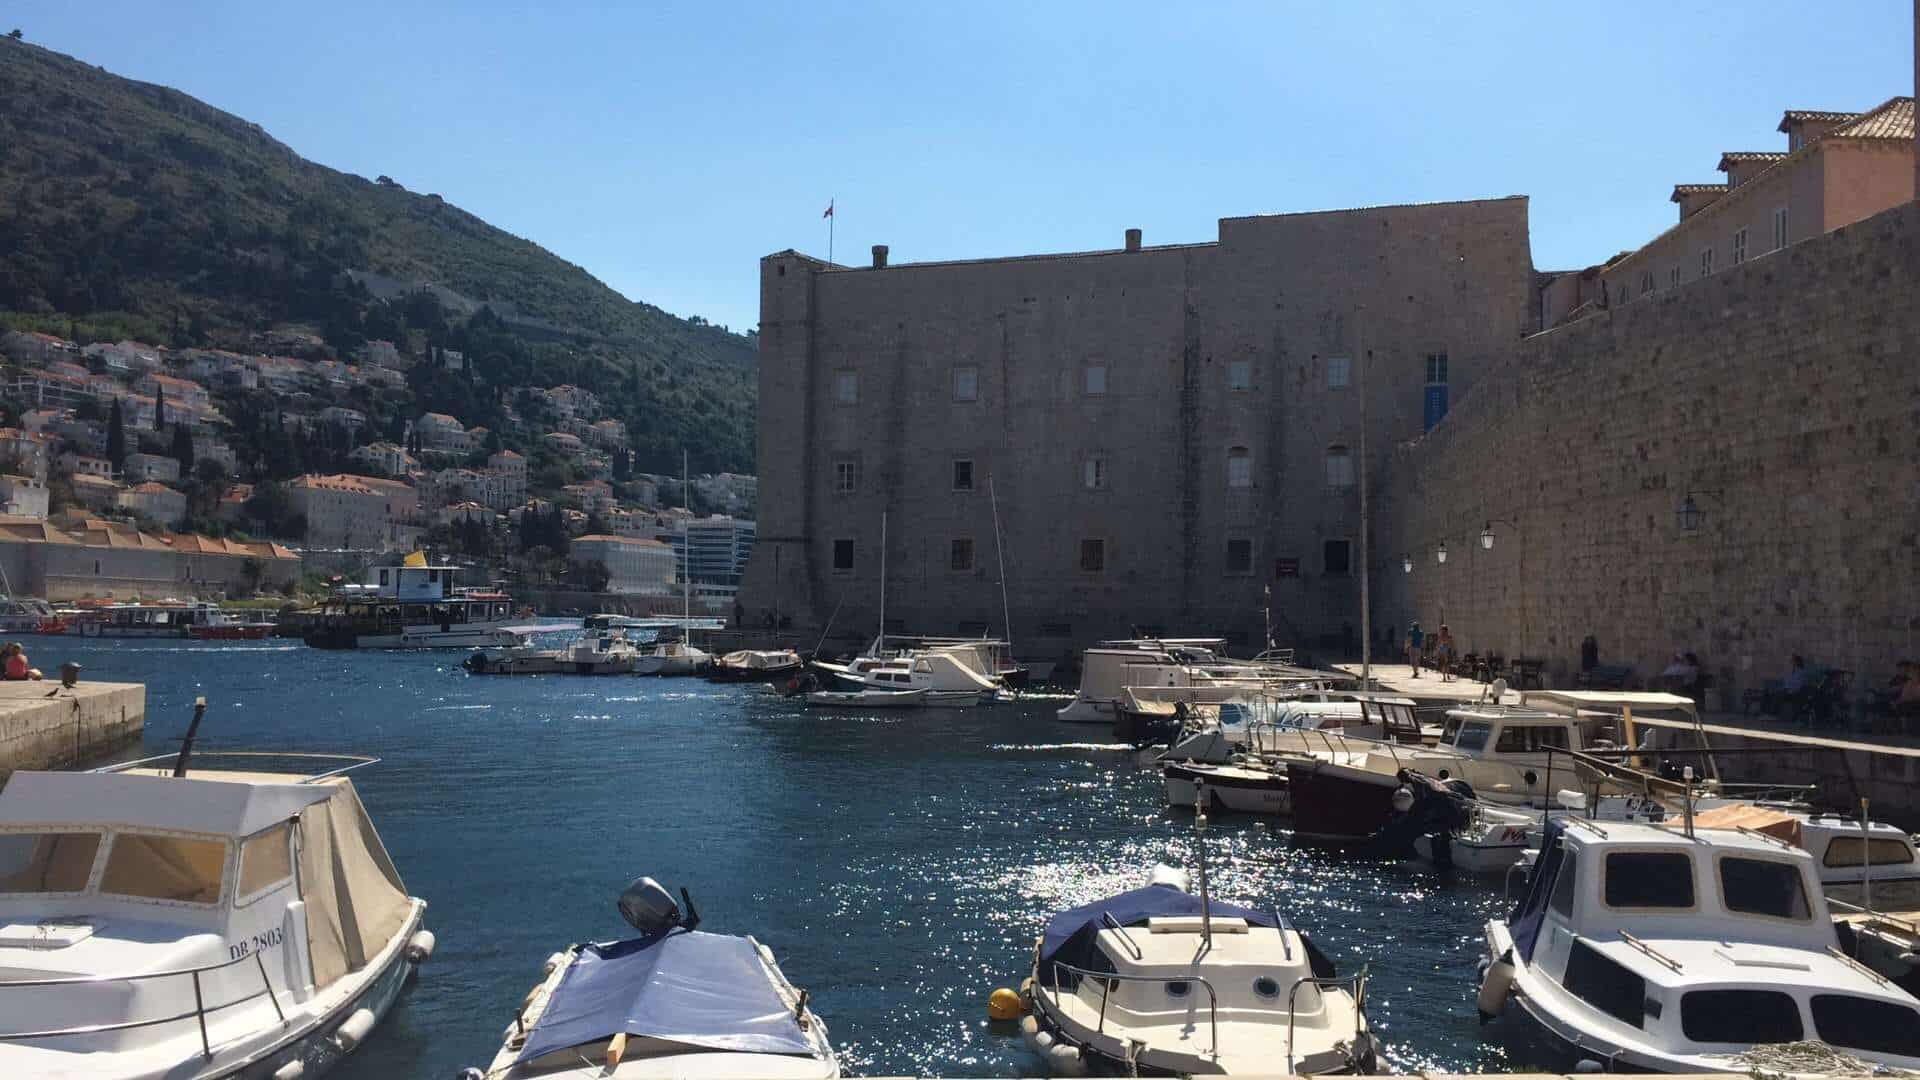 Discover dubrovnik old town guided walking tour - The Fortress Of St John